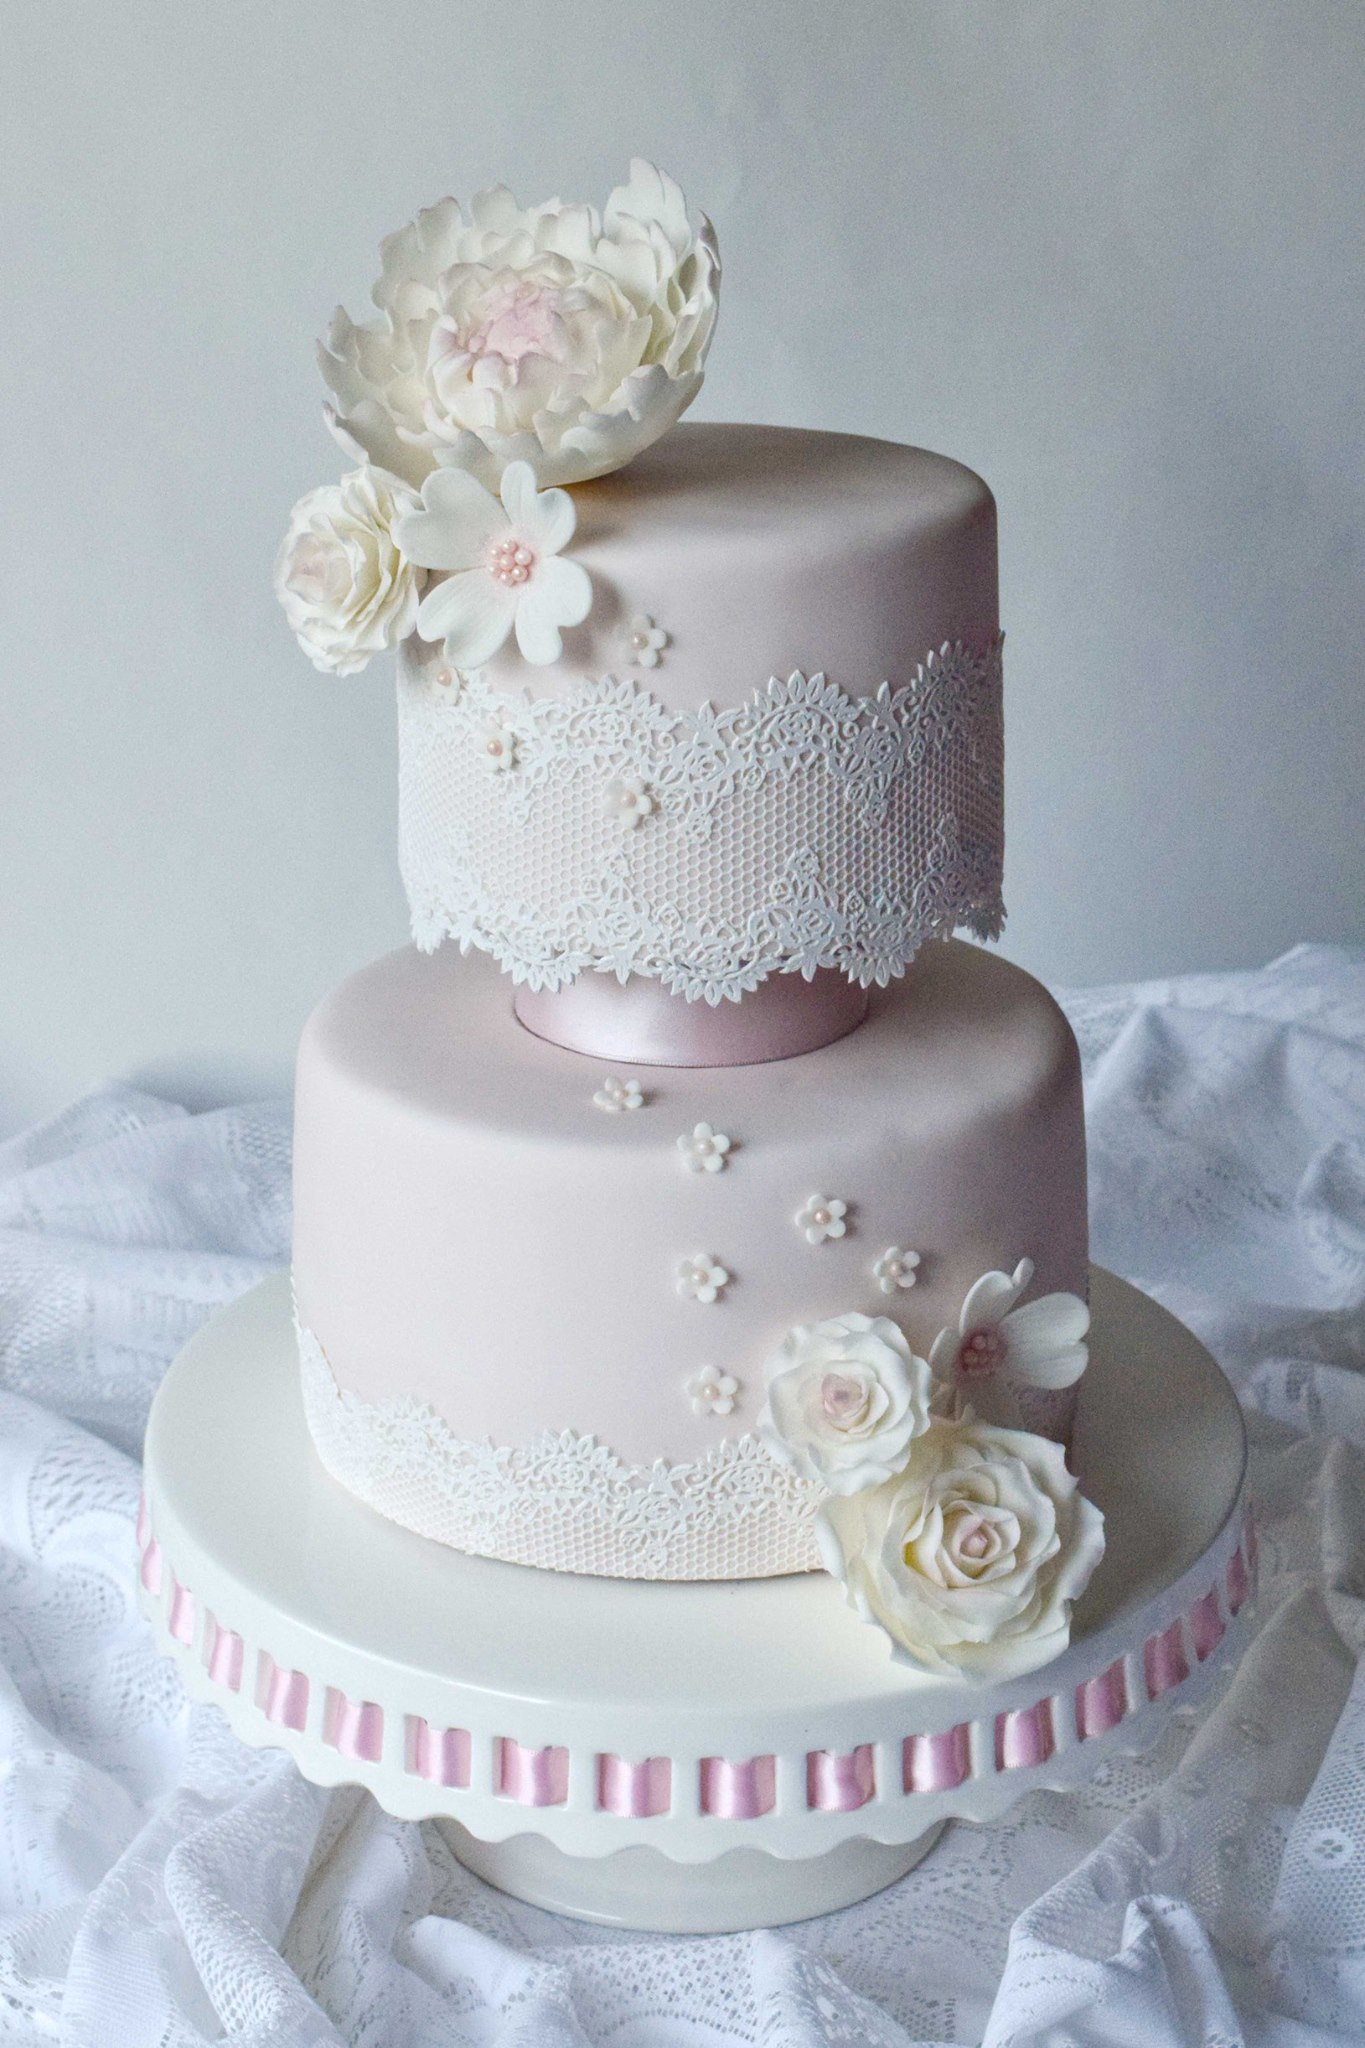 Wedding Cakes | The Cake Flower